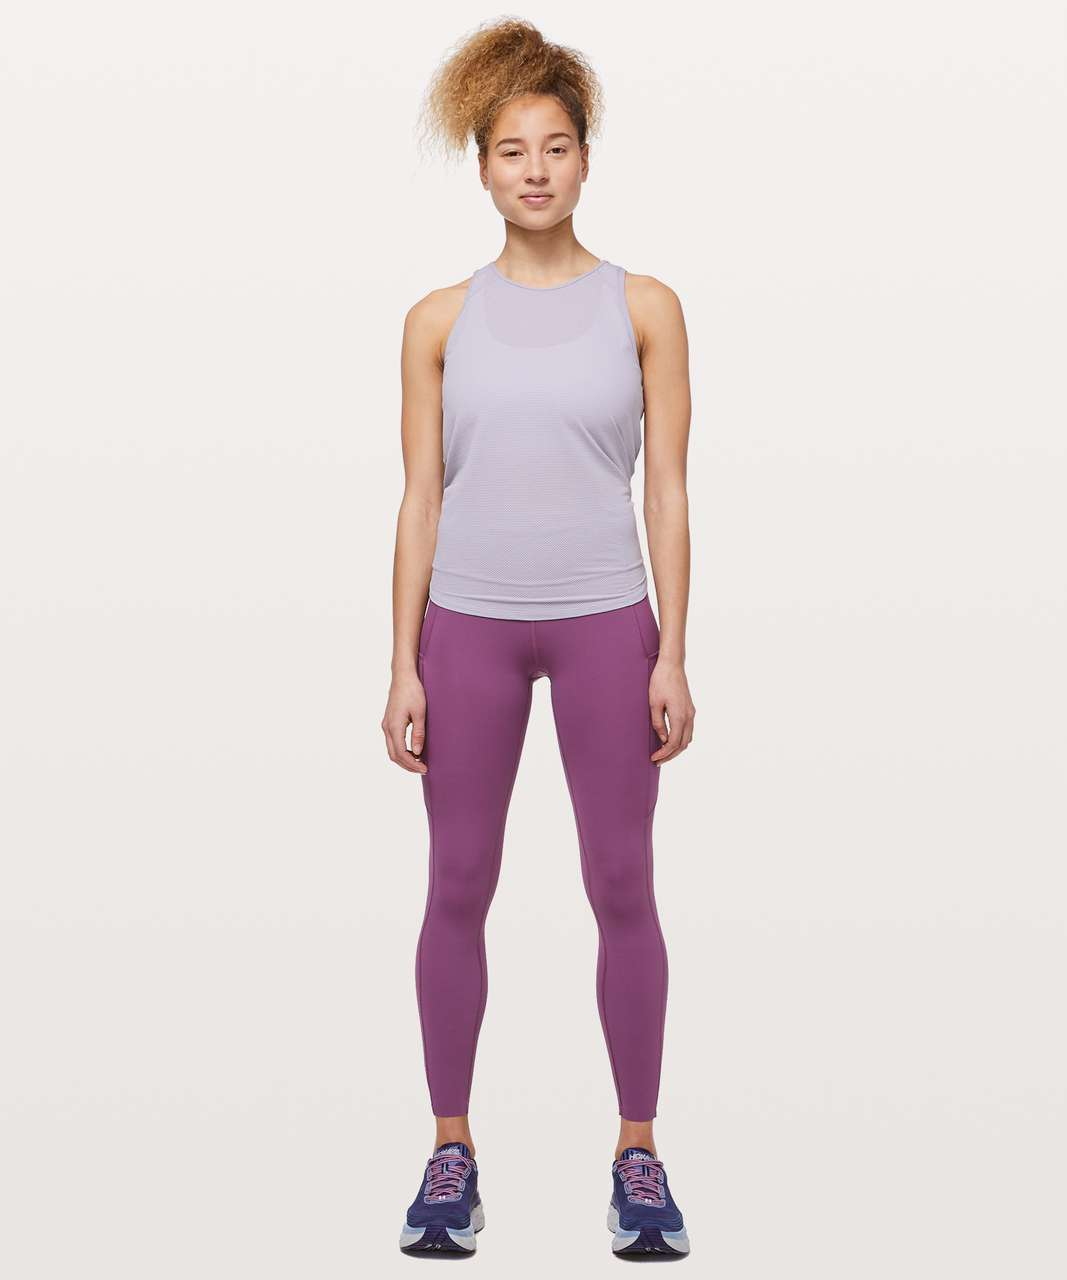 "Lululemon Fast & Free 7/8 Tight II *Non-Reflective Nulux 25"" - Vintage Plum"